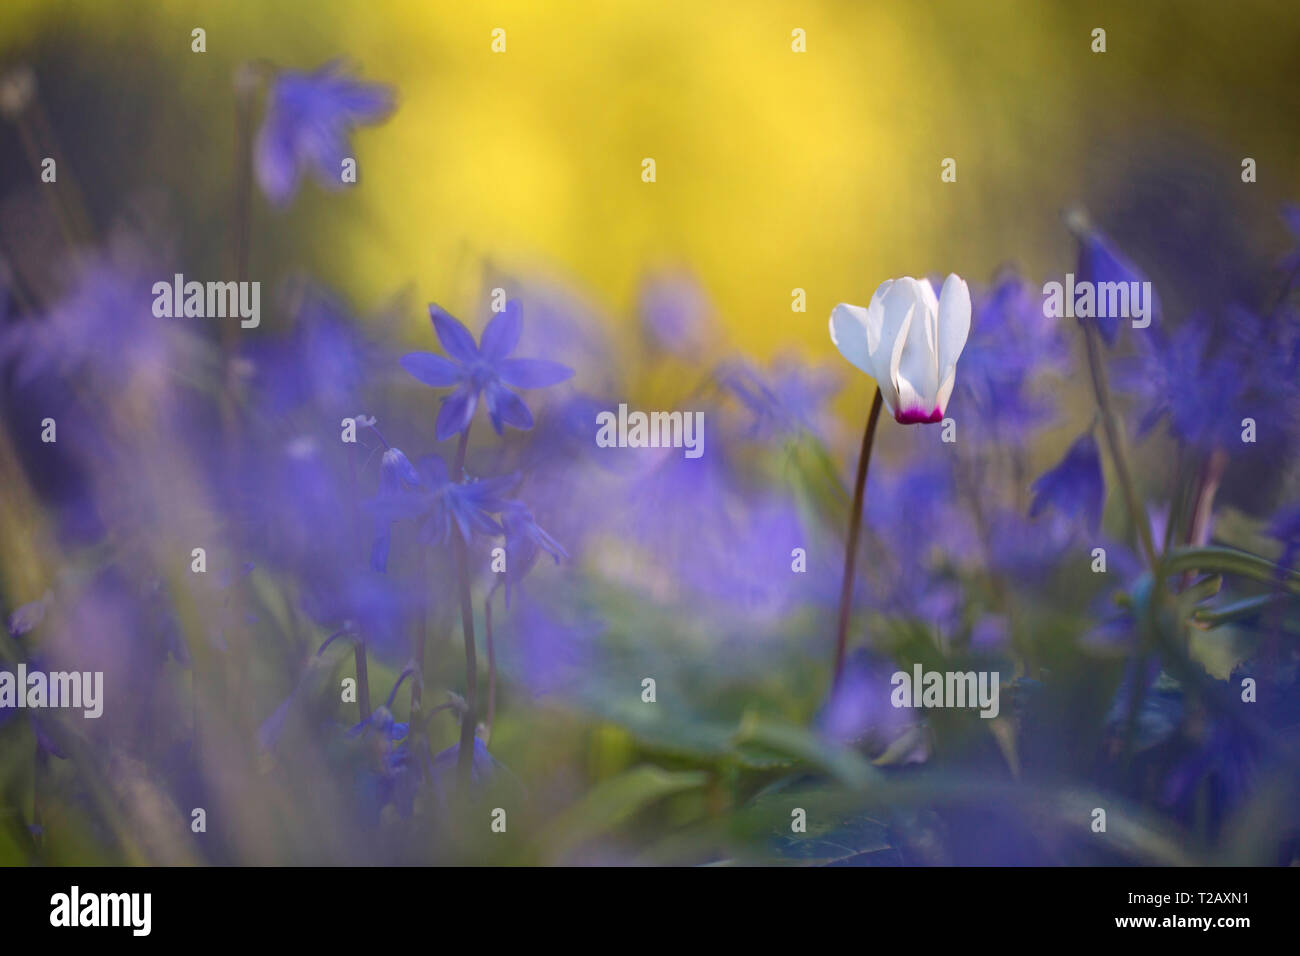 Selective focus on a Single Persian Violet (Cyclamen persicum) with a blurred purple background, Photographed in Israel in February - Stock Image